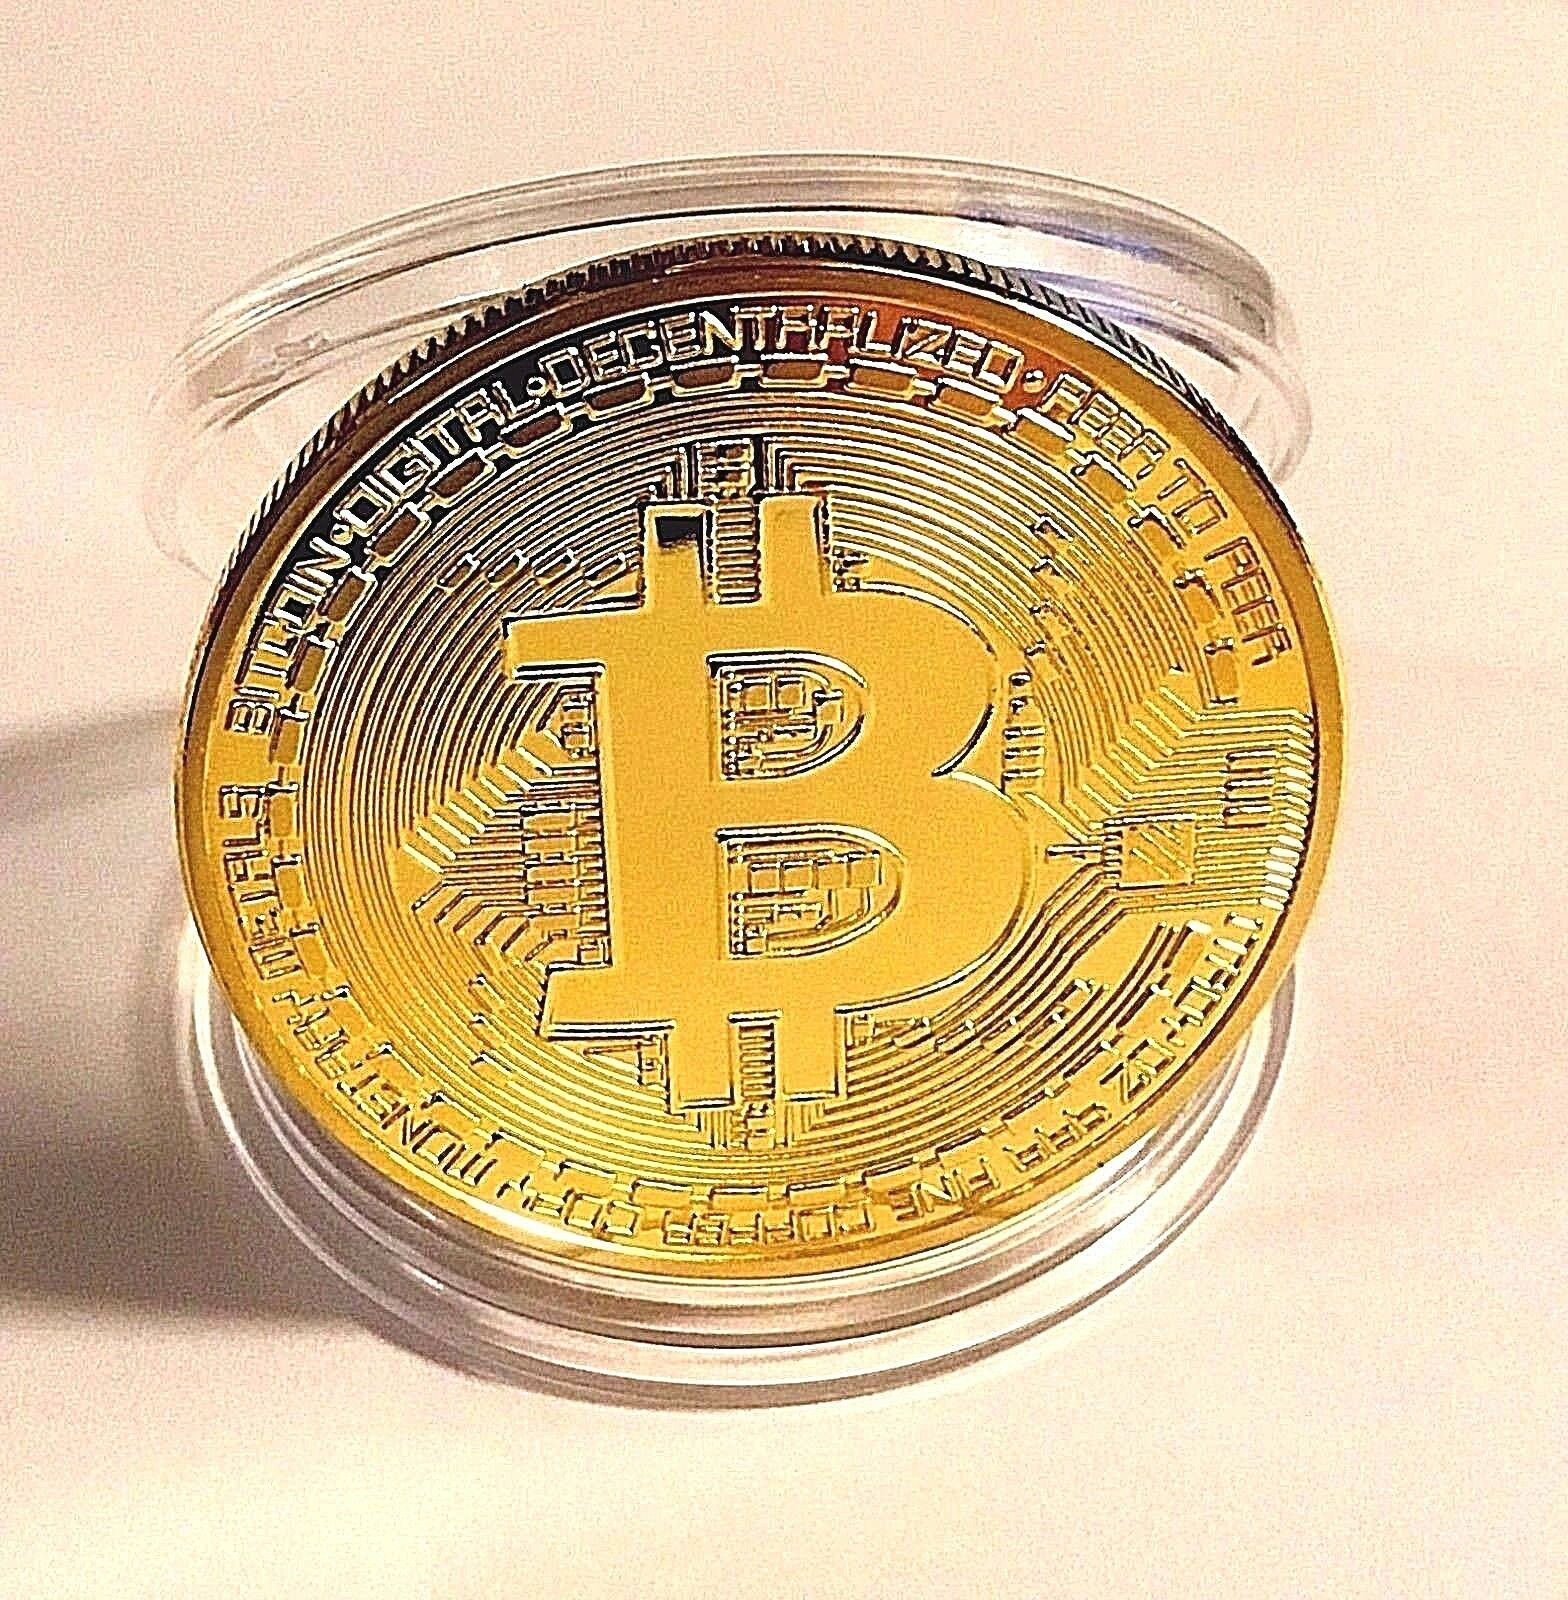 HOT!RARE! GOLD PLATED PHYSICAL BITCOIN IN PROTECTIVE ACRYLIC CASE FAST SHIPPING